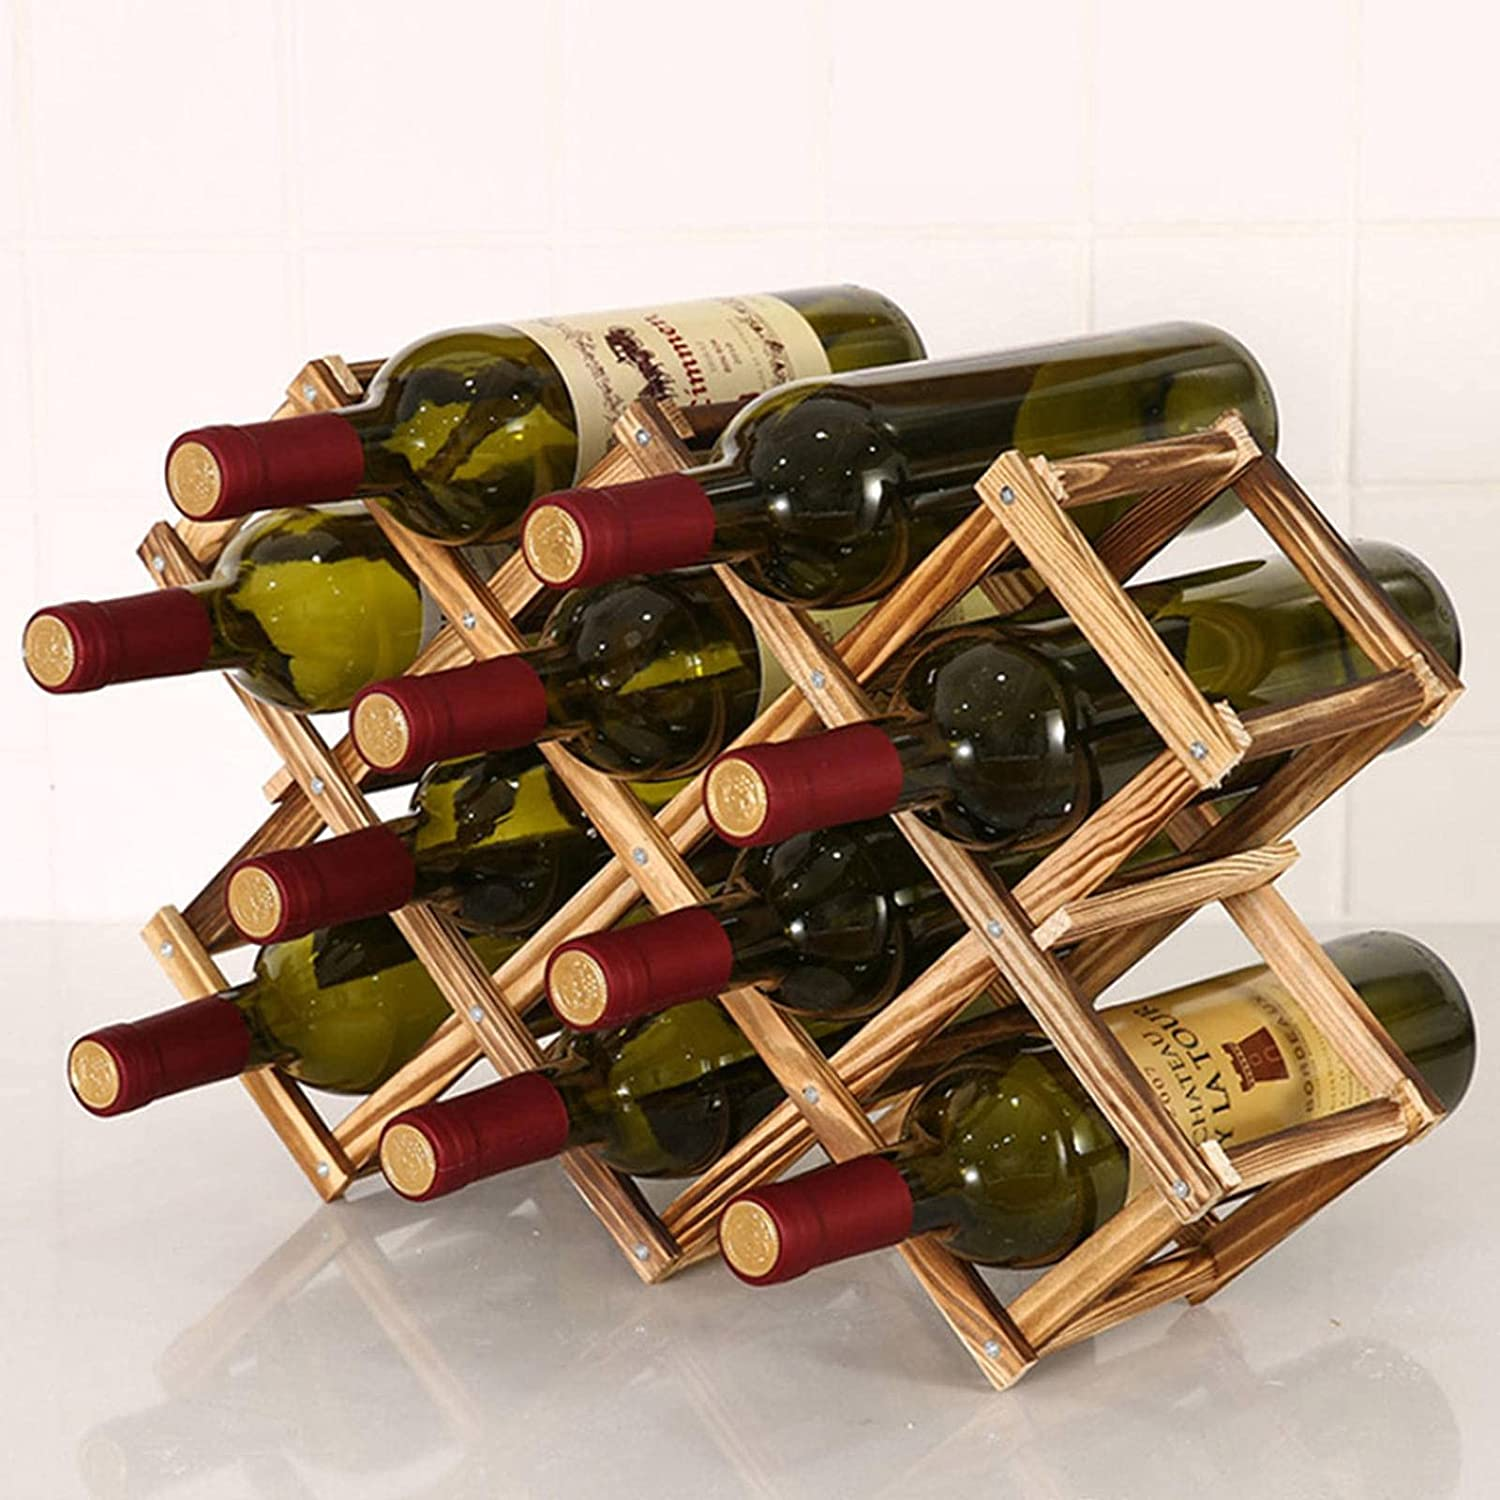 N\C Free Shipping New Wooden Wine SALENEW very popular Bottle Rack Practical Foldable and L Creative